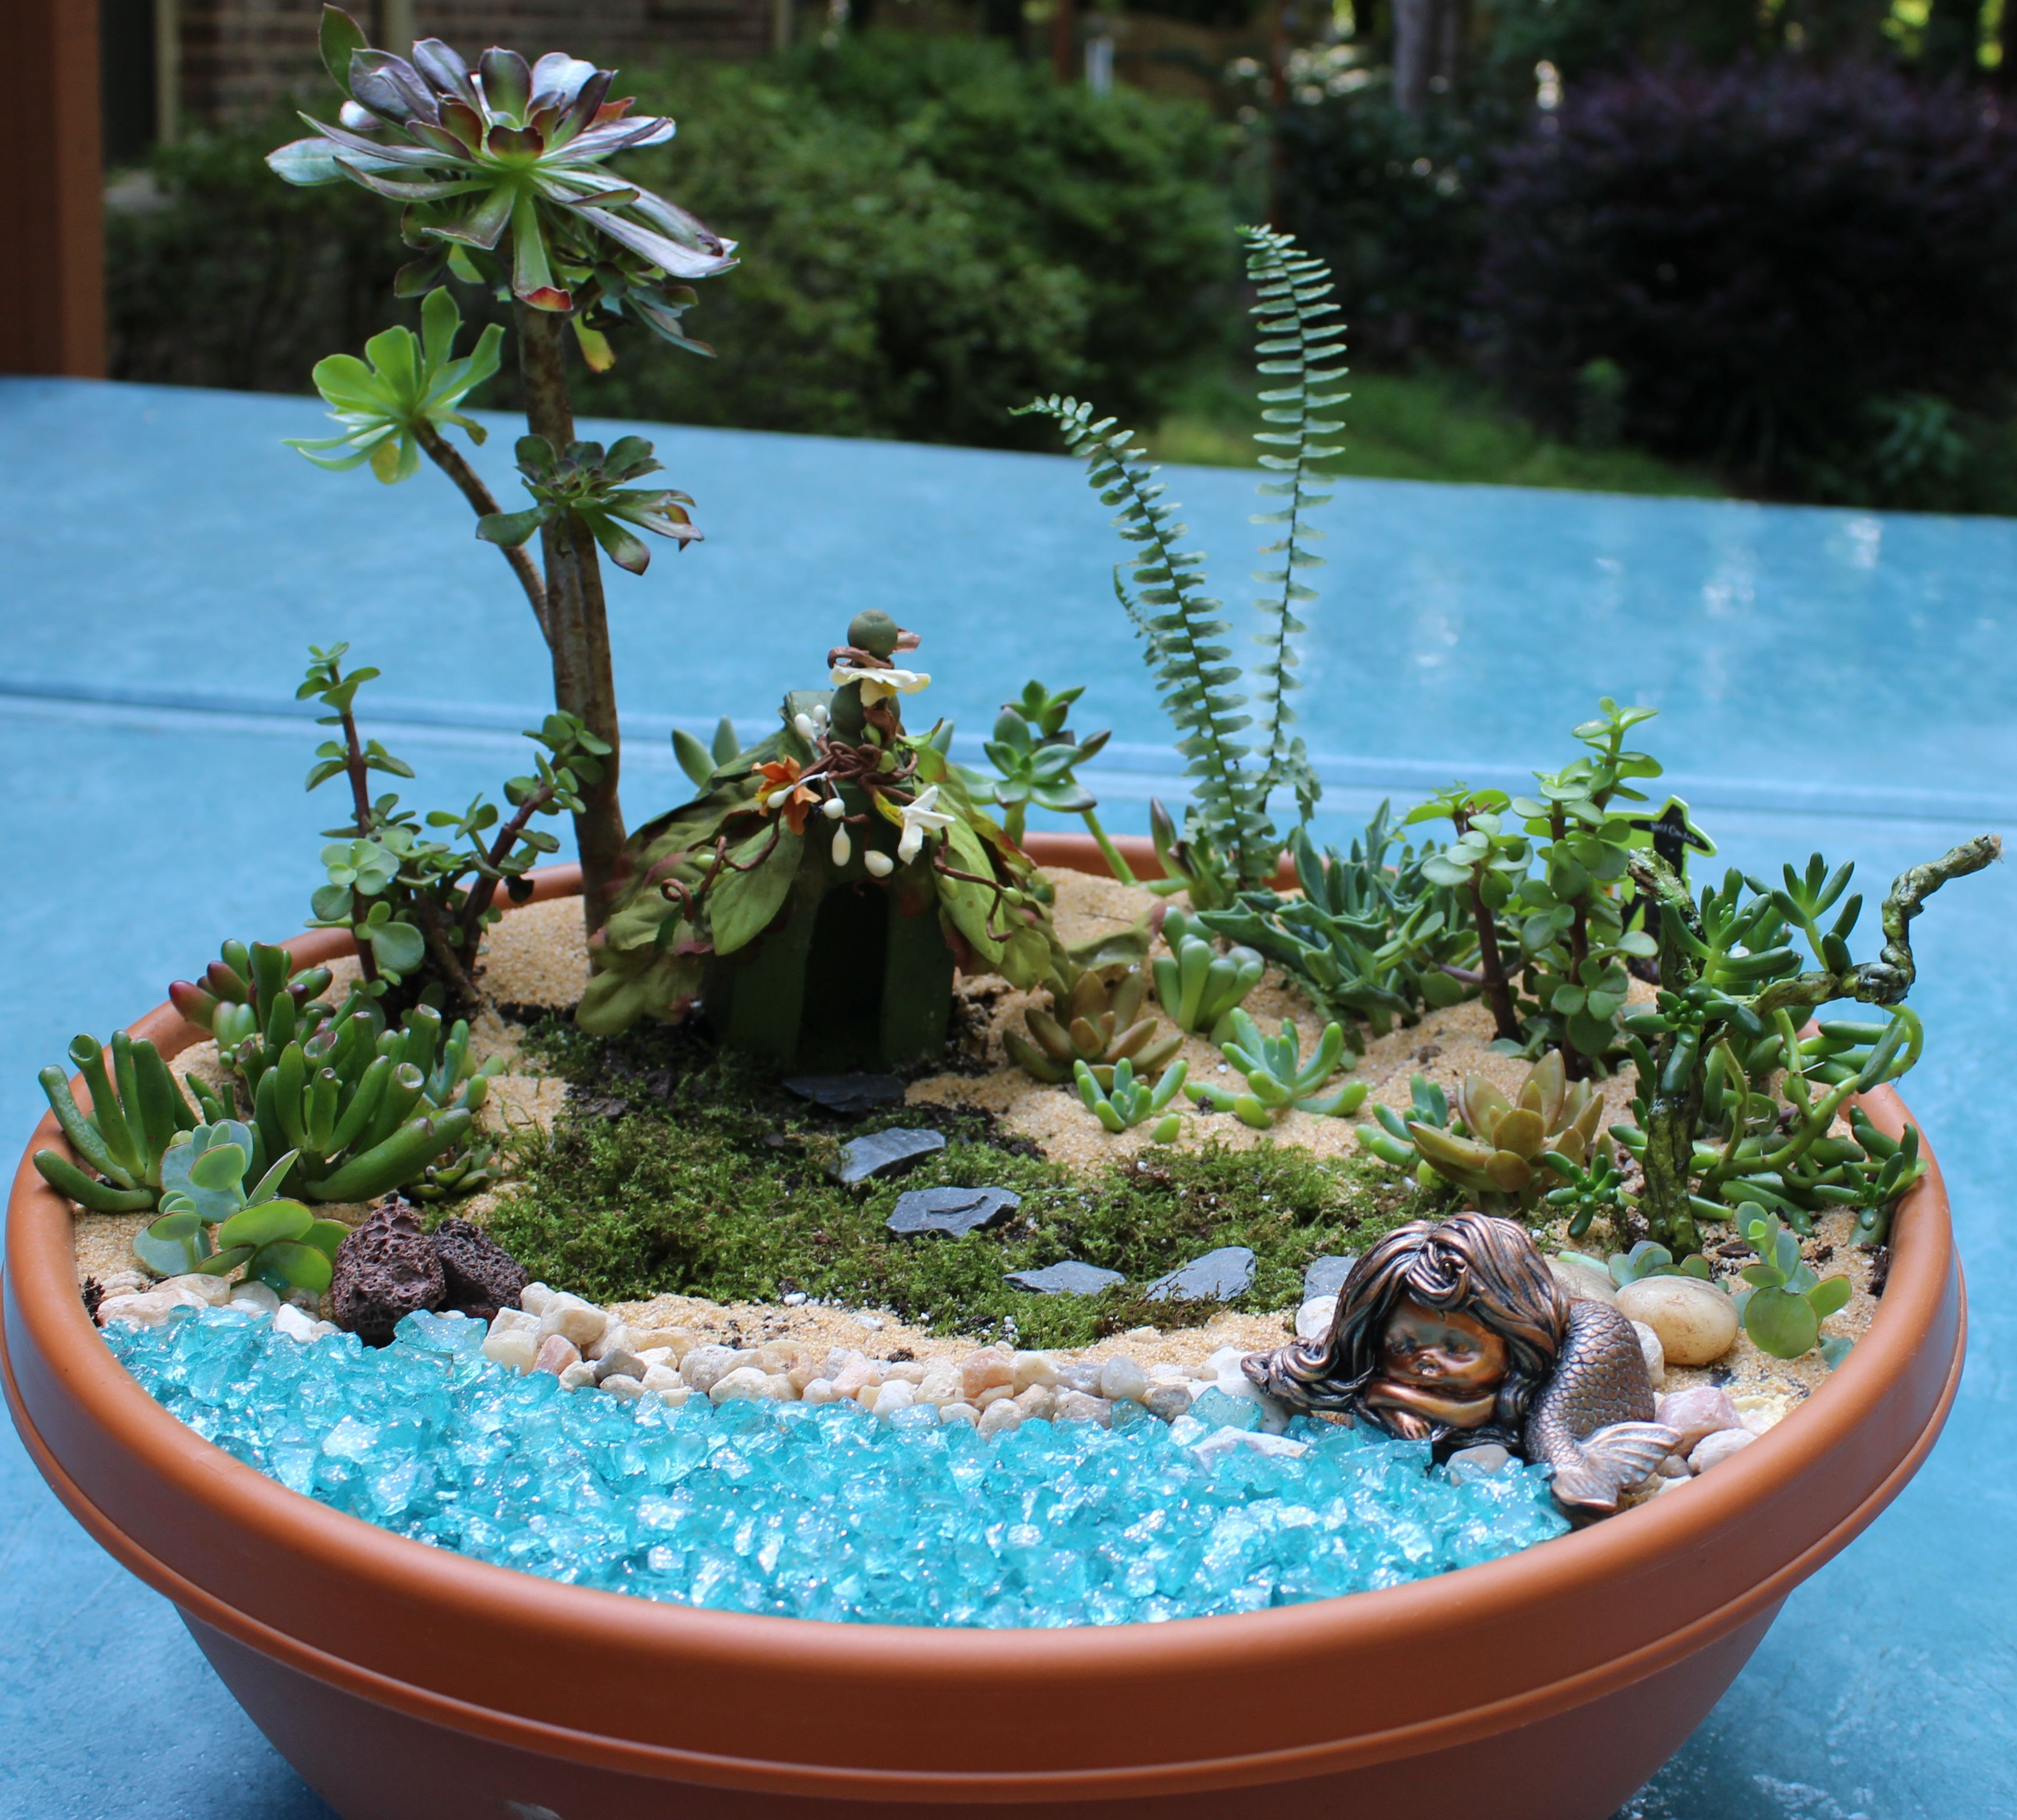 Garden Fairy: 16 Magical Mermaid Gardens You Can Make In An Afternoon